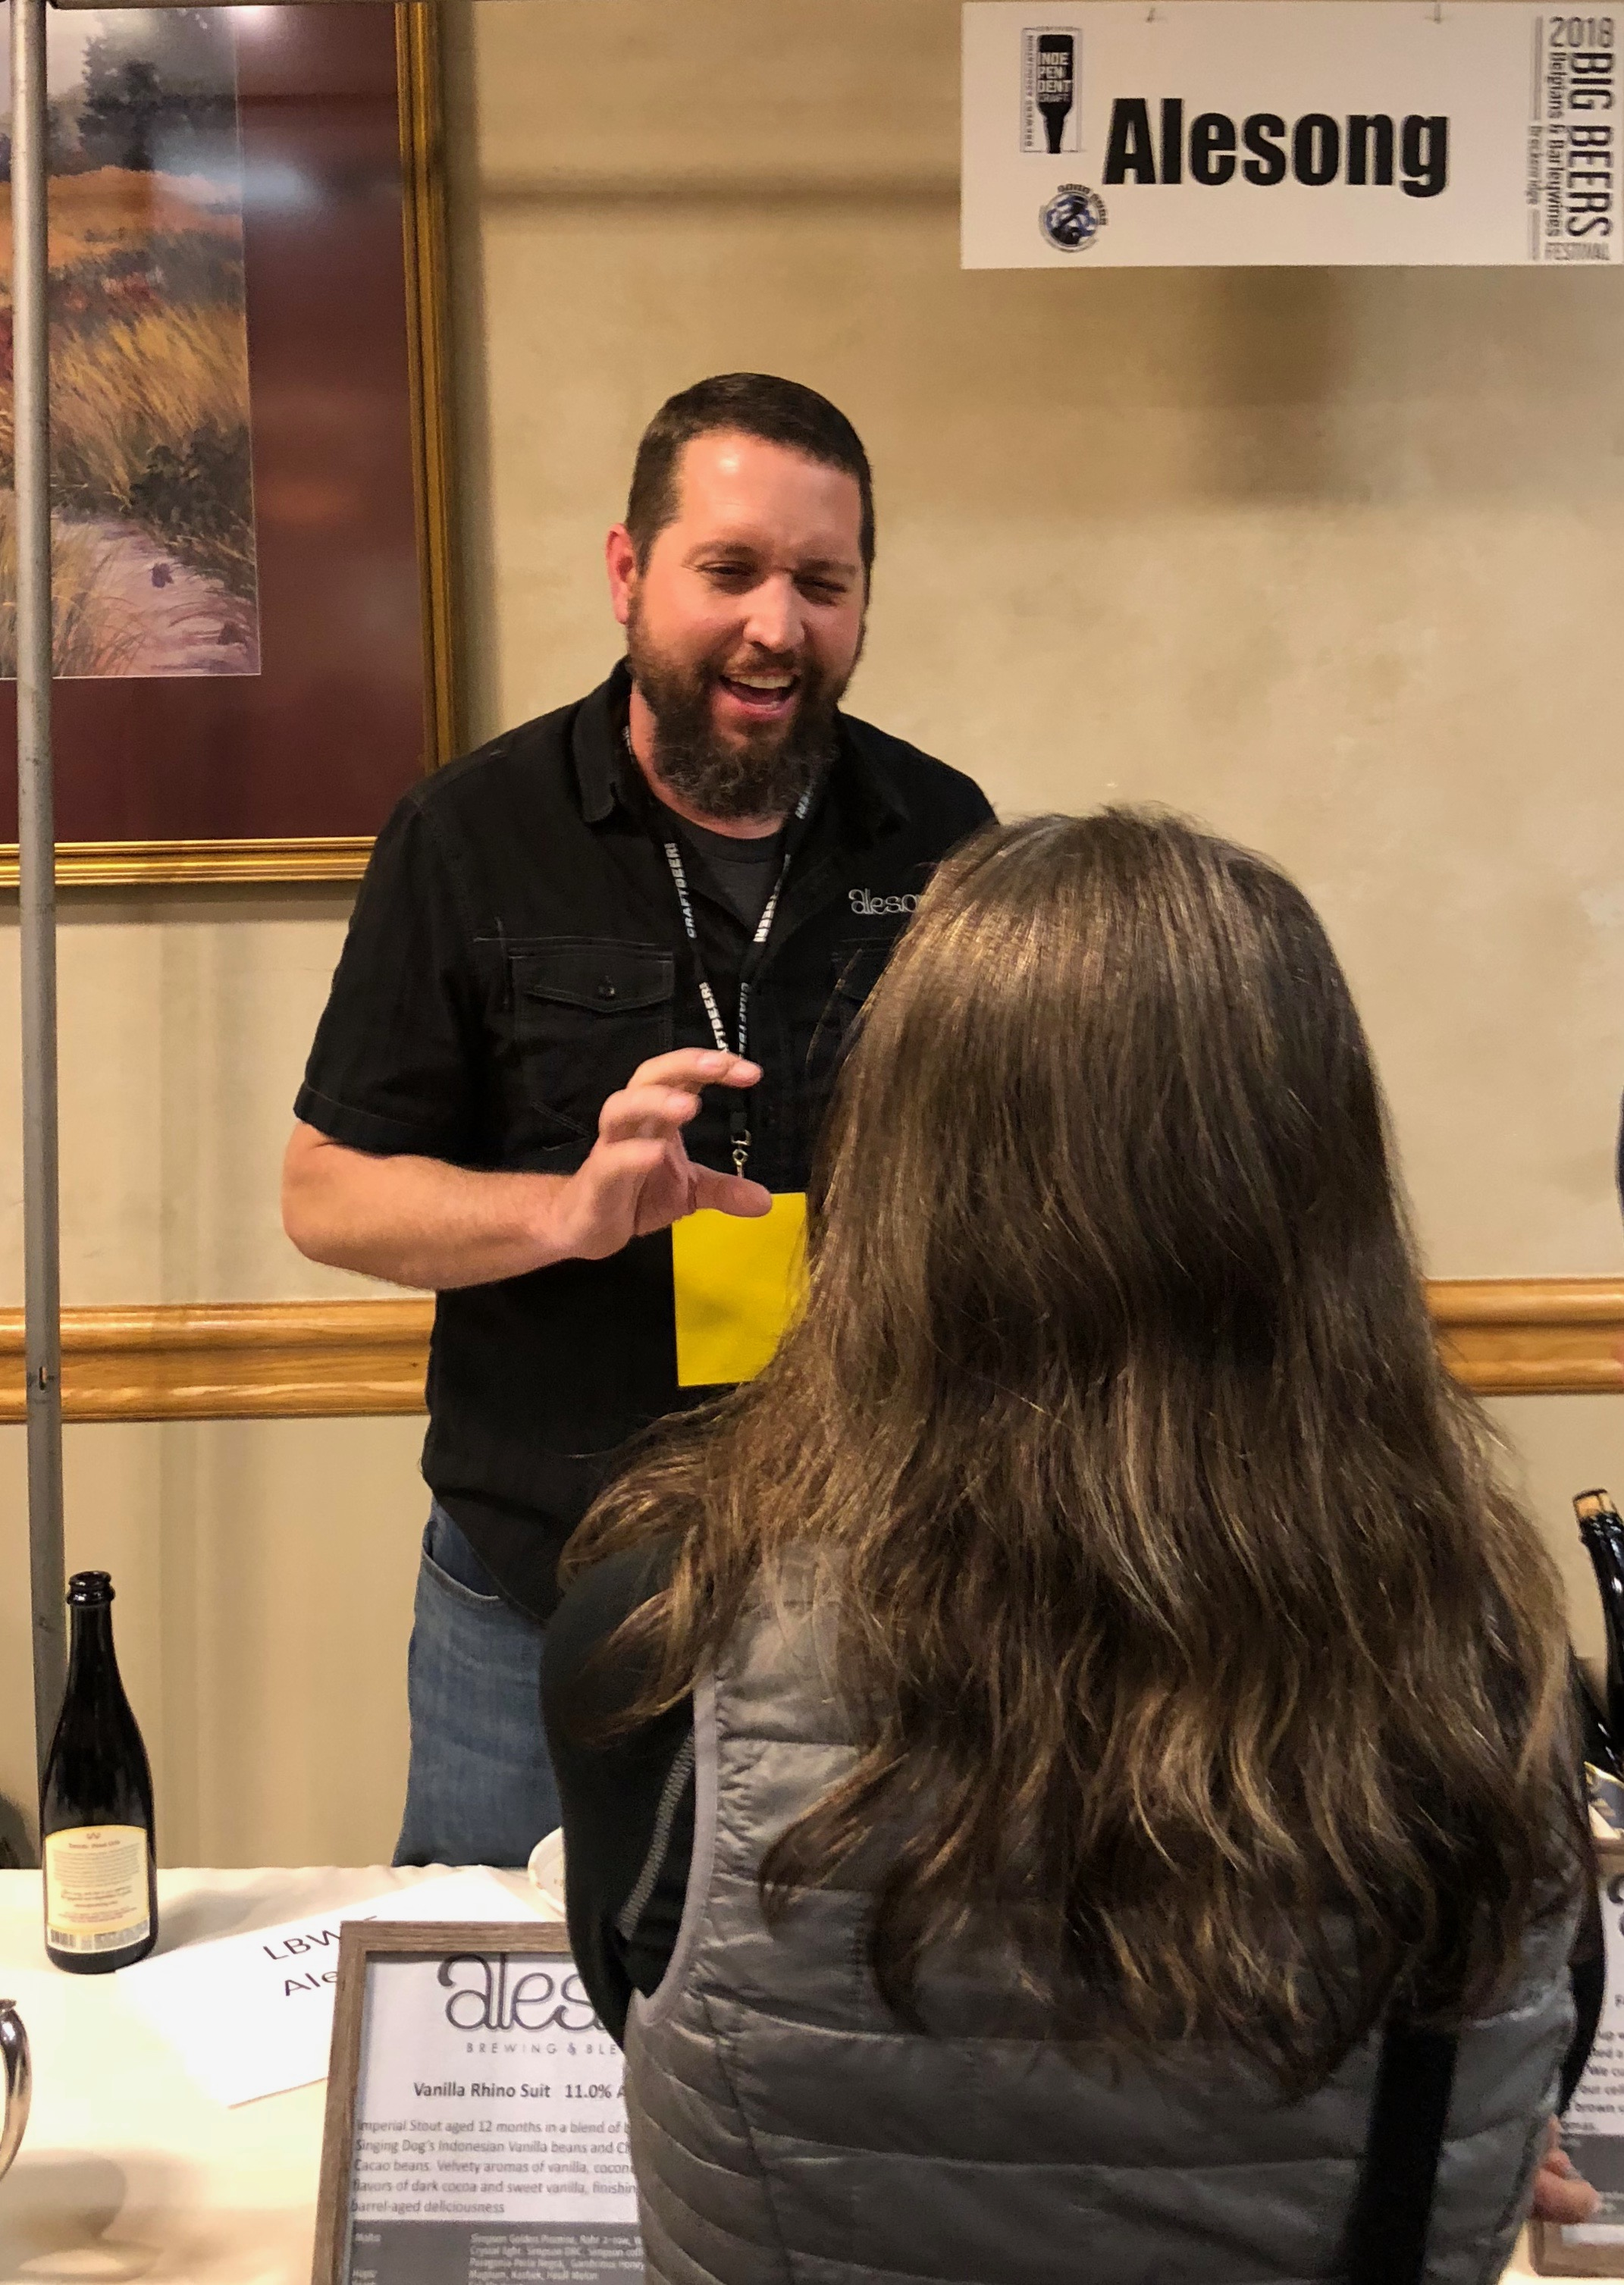 Matt Van Wyk from Alesong Brewing & Blending tasting Julia Herz from the Brewers Association through his beers at the 2018 Big Beers, Belgians & Barleywines Festival.